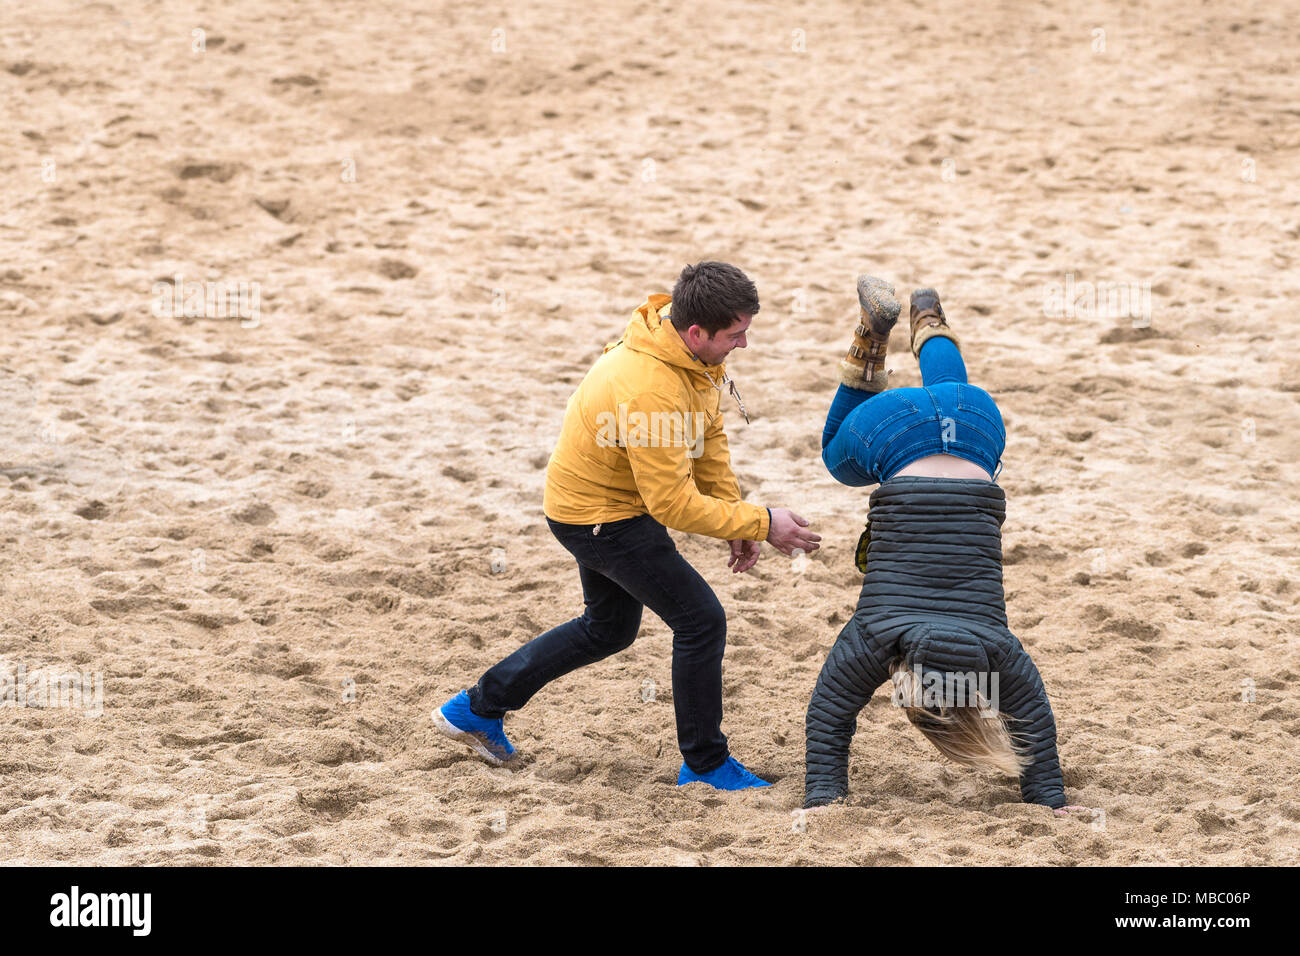 A man attempting to help his wife perform a handstand on a beach. - Stock Image